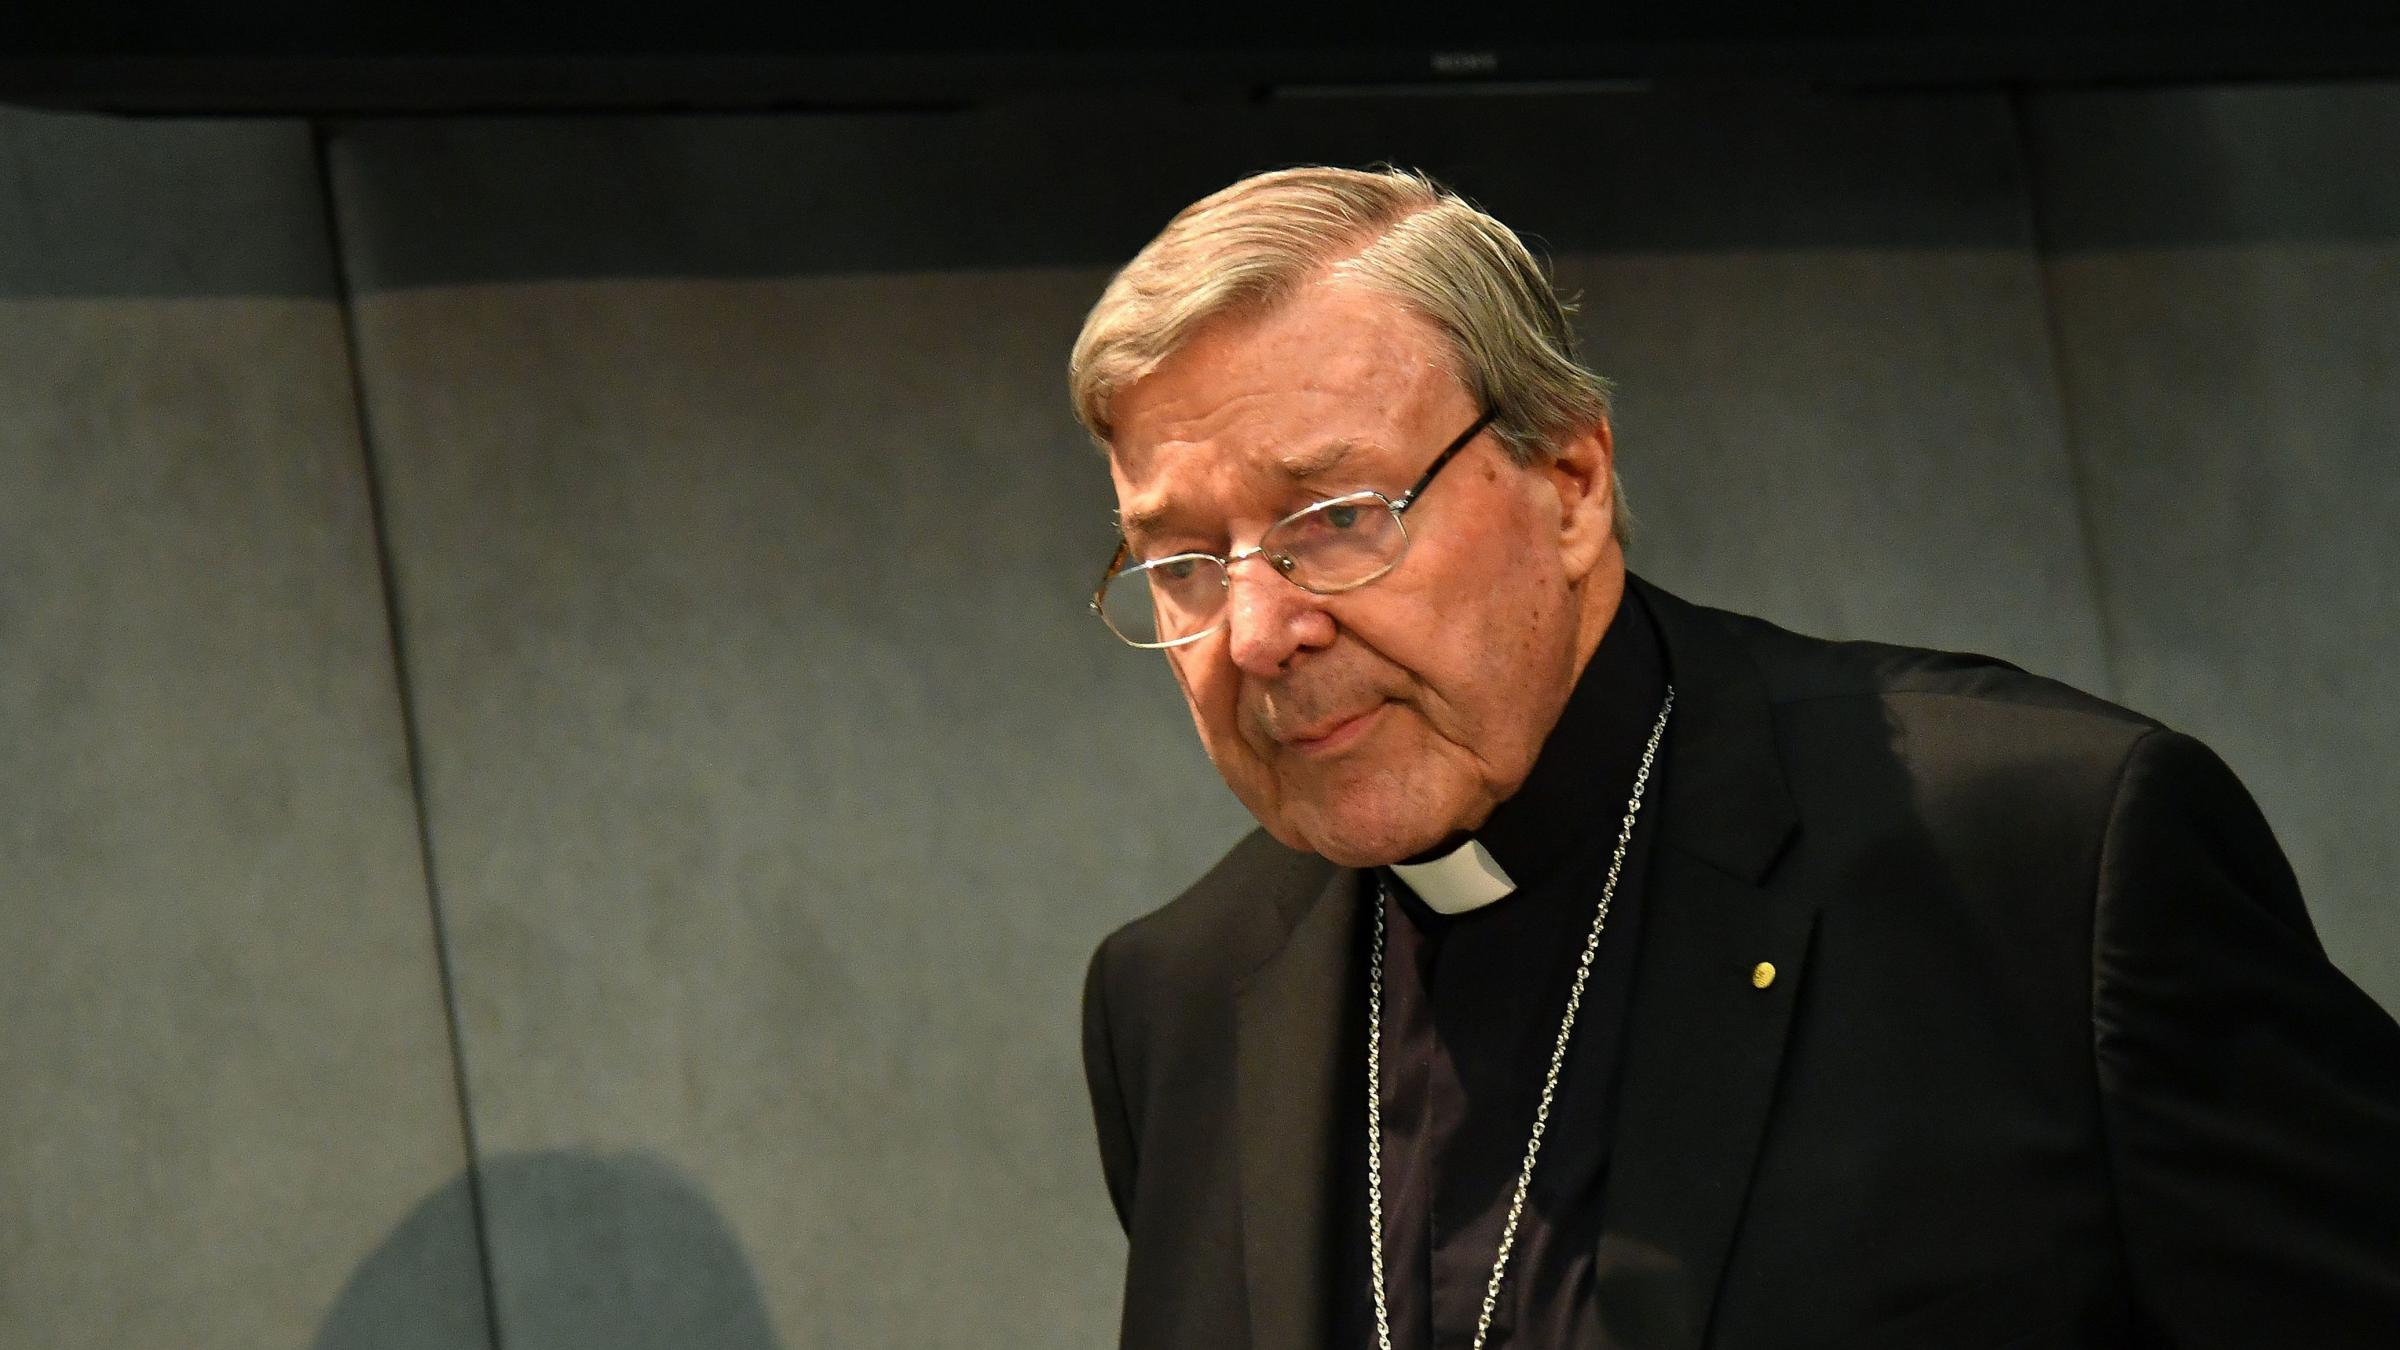 Cardinal George Pell returns to Australia to face historical sex abuse charges